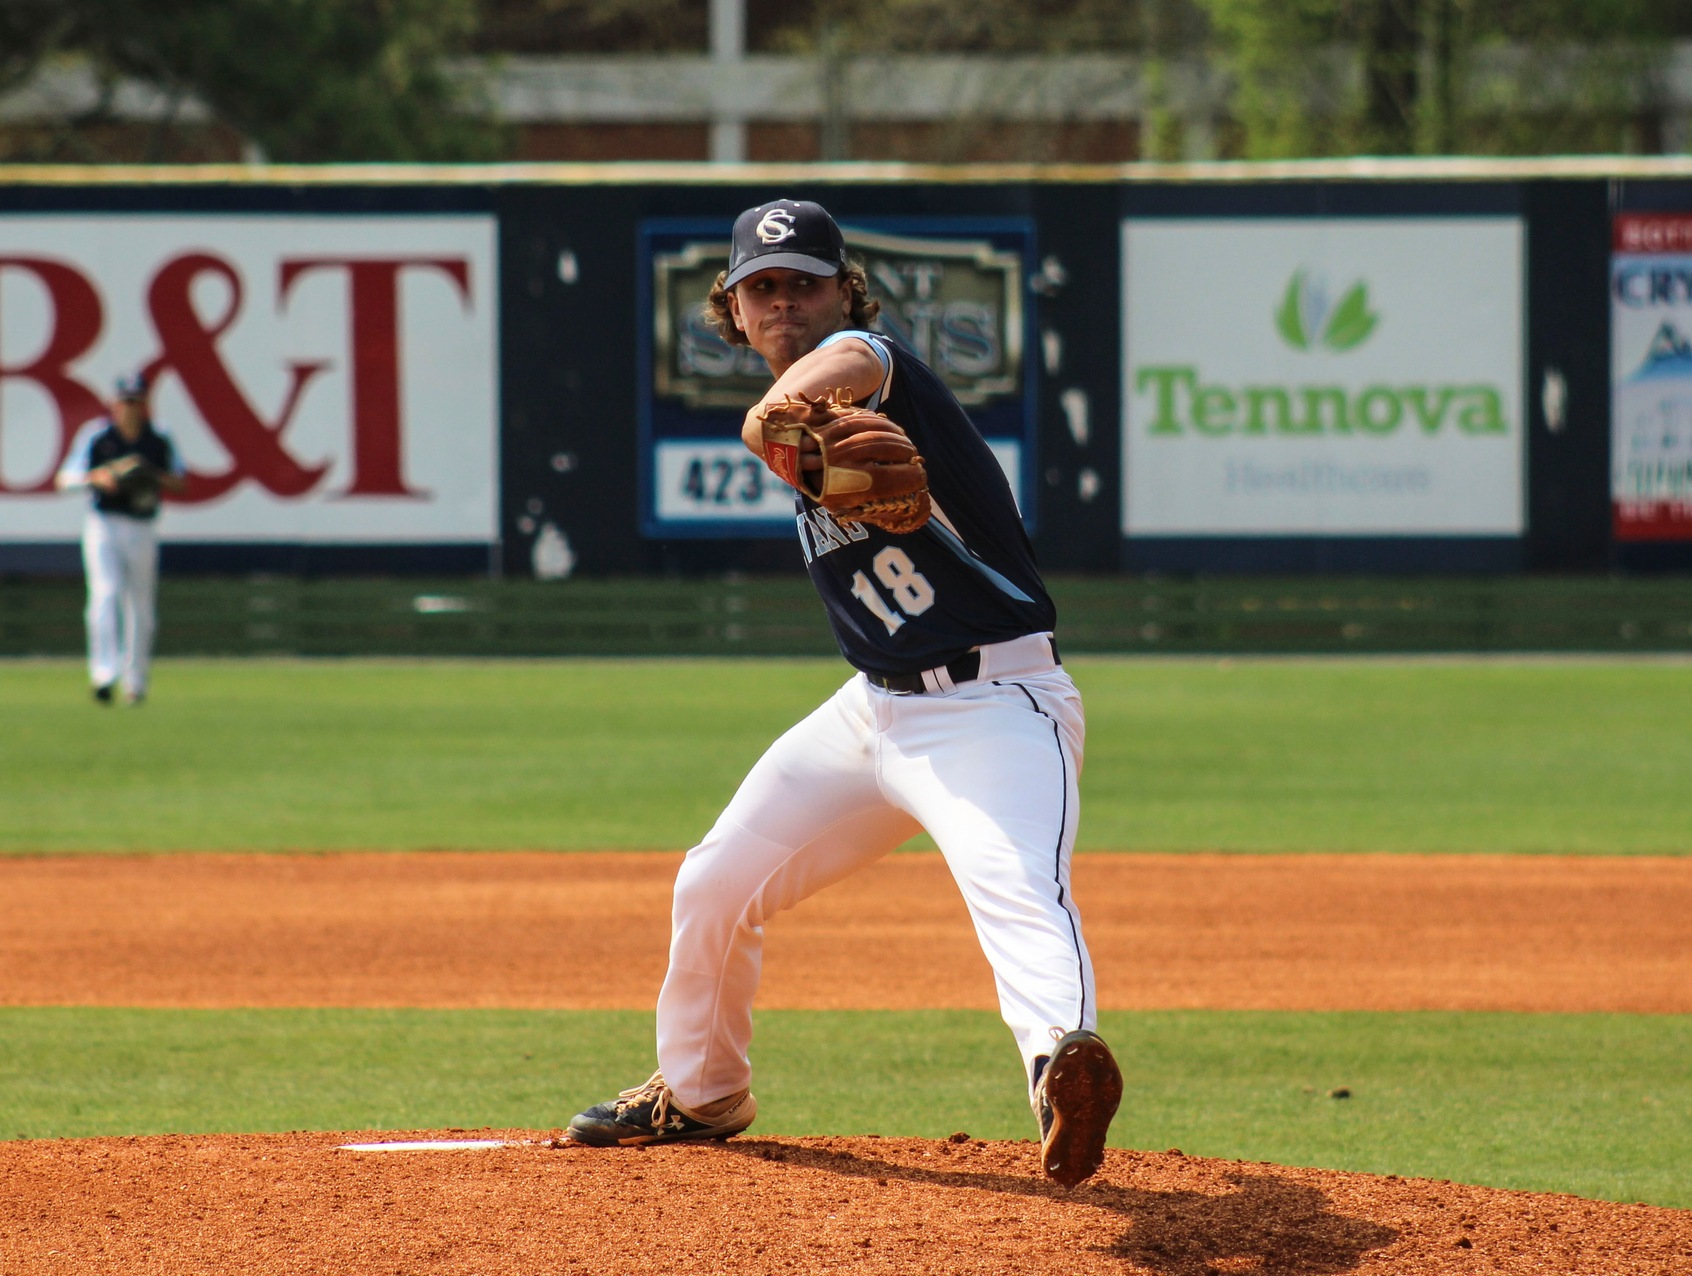 Hickman Named TCCAA Pitcher of the Week